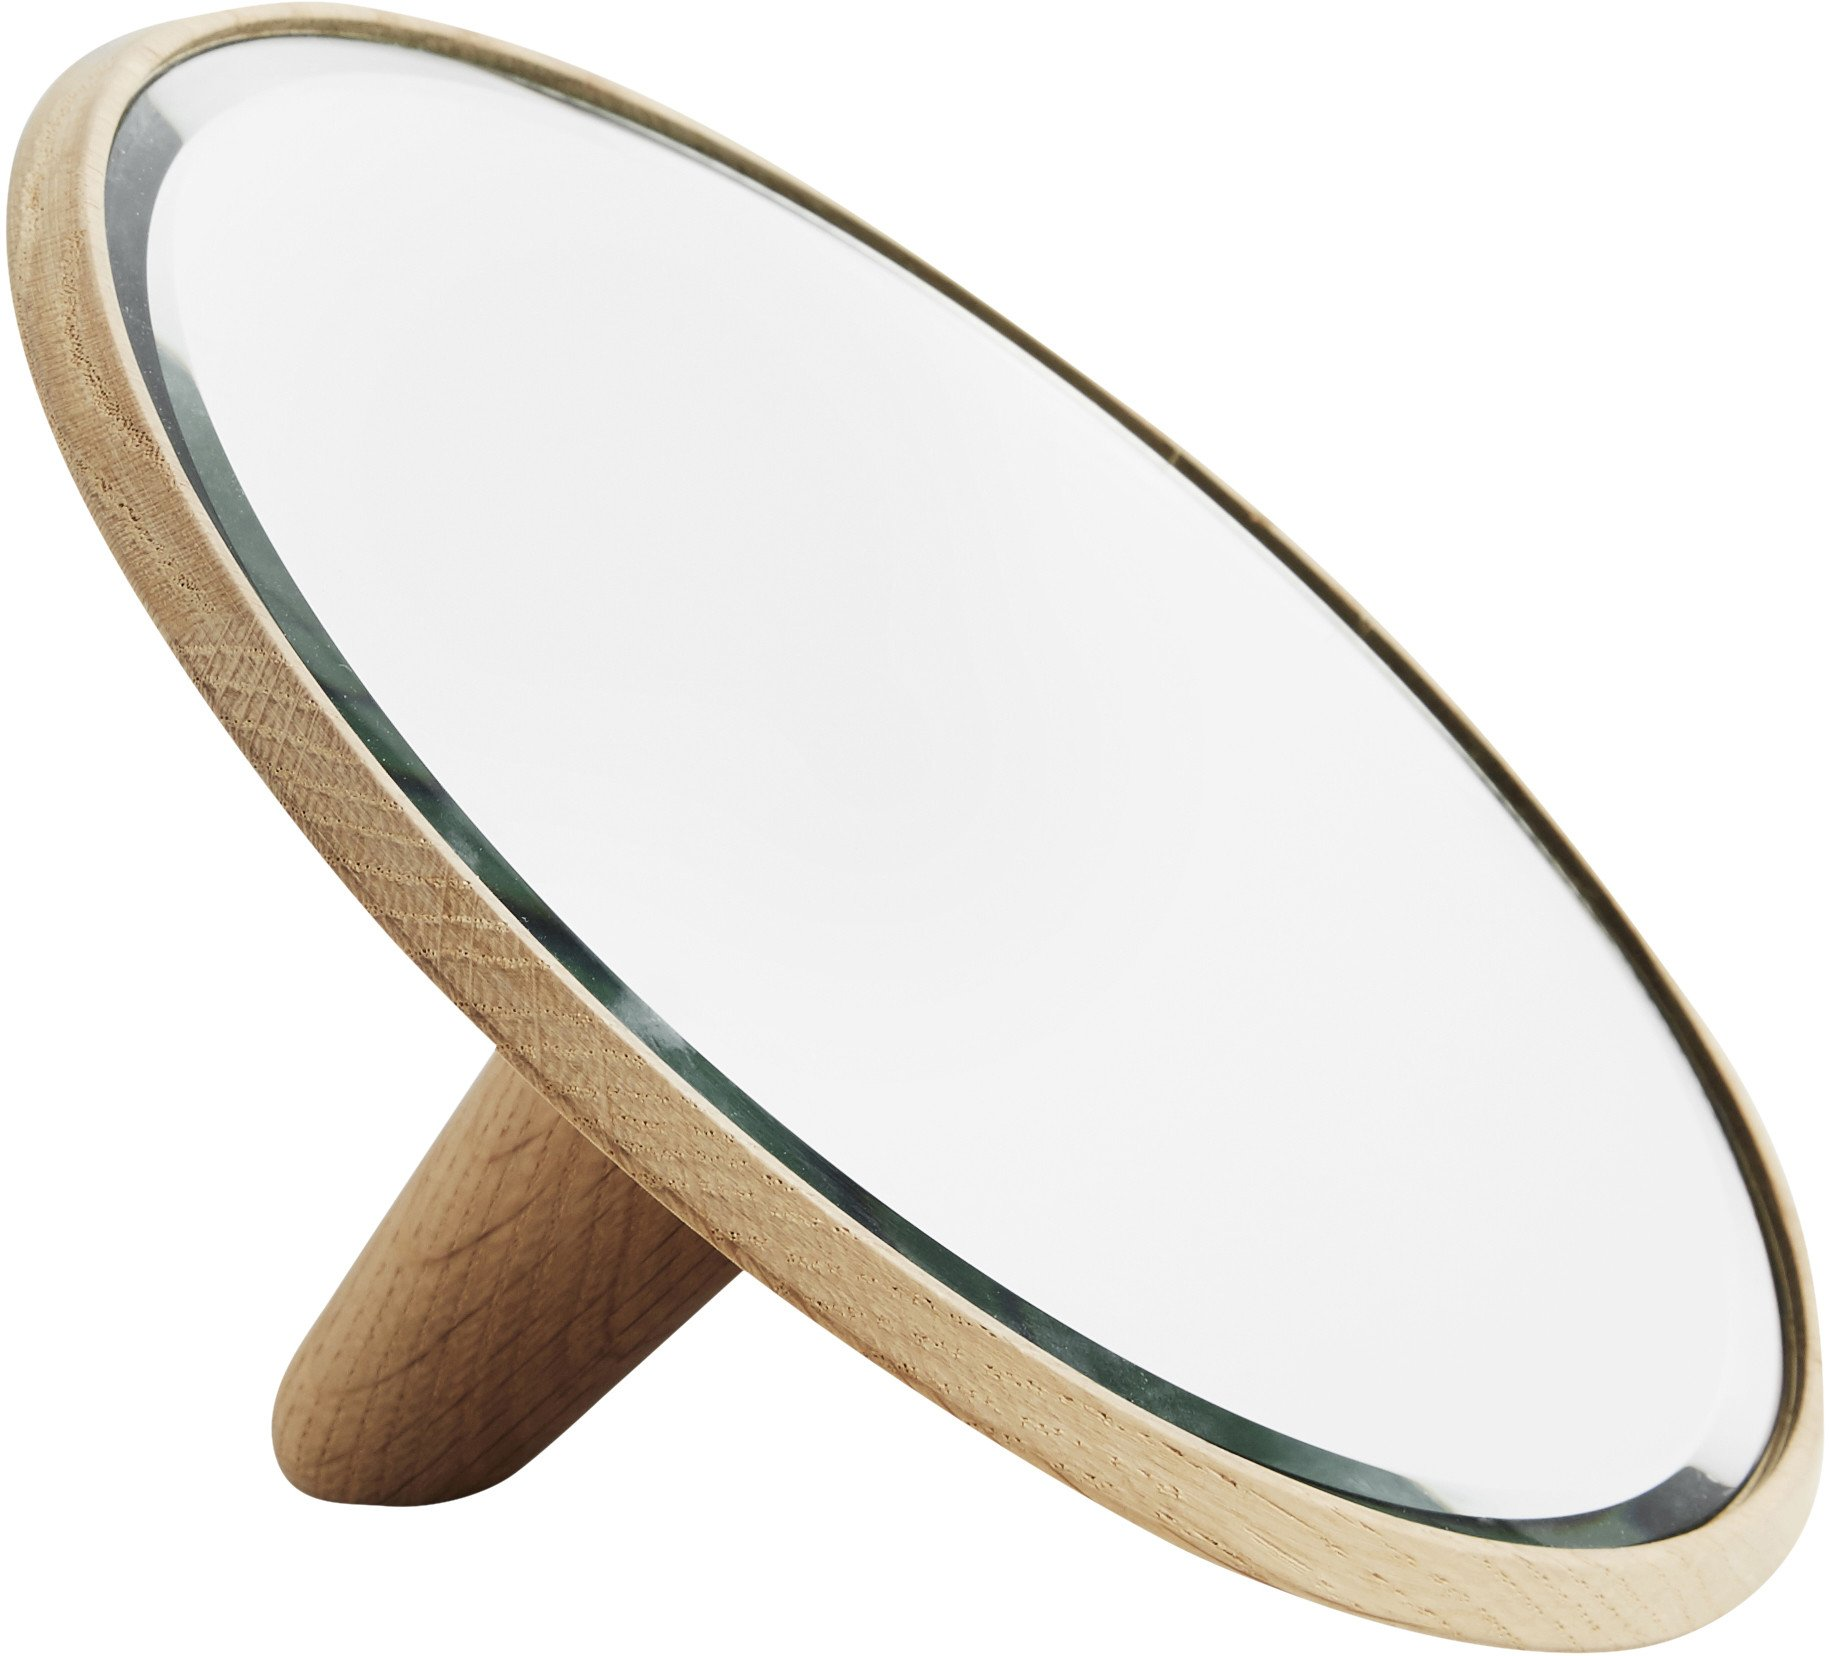 Brab Mirror by M. Zanolin for WOUD